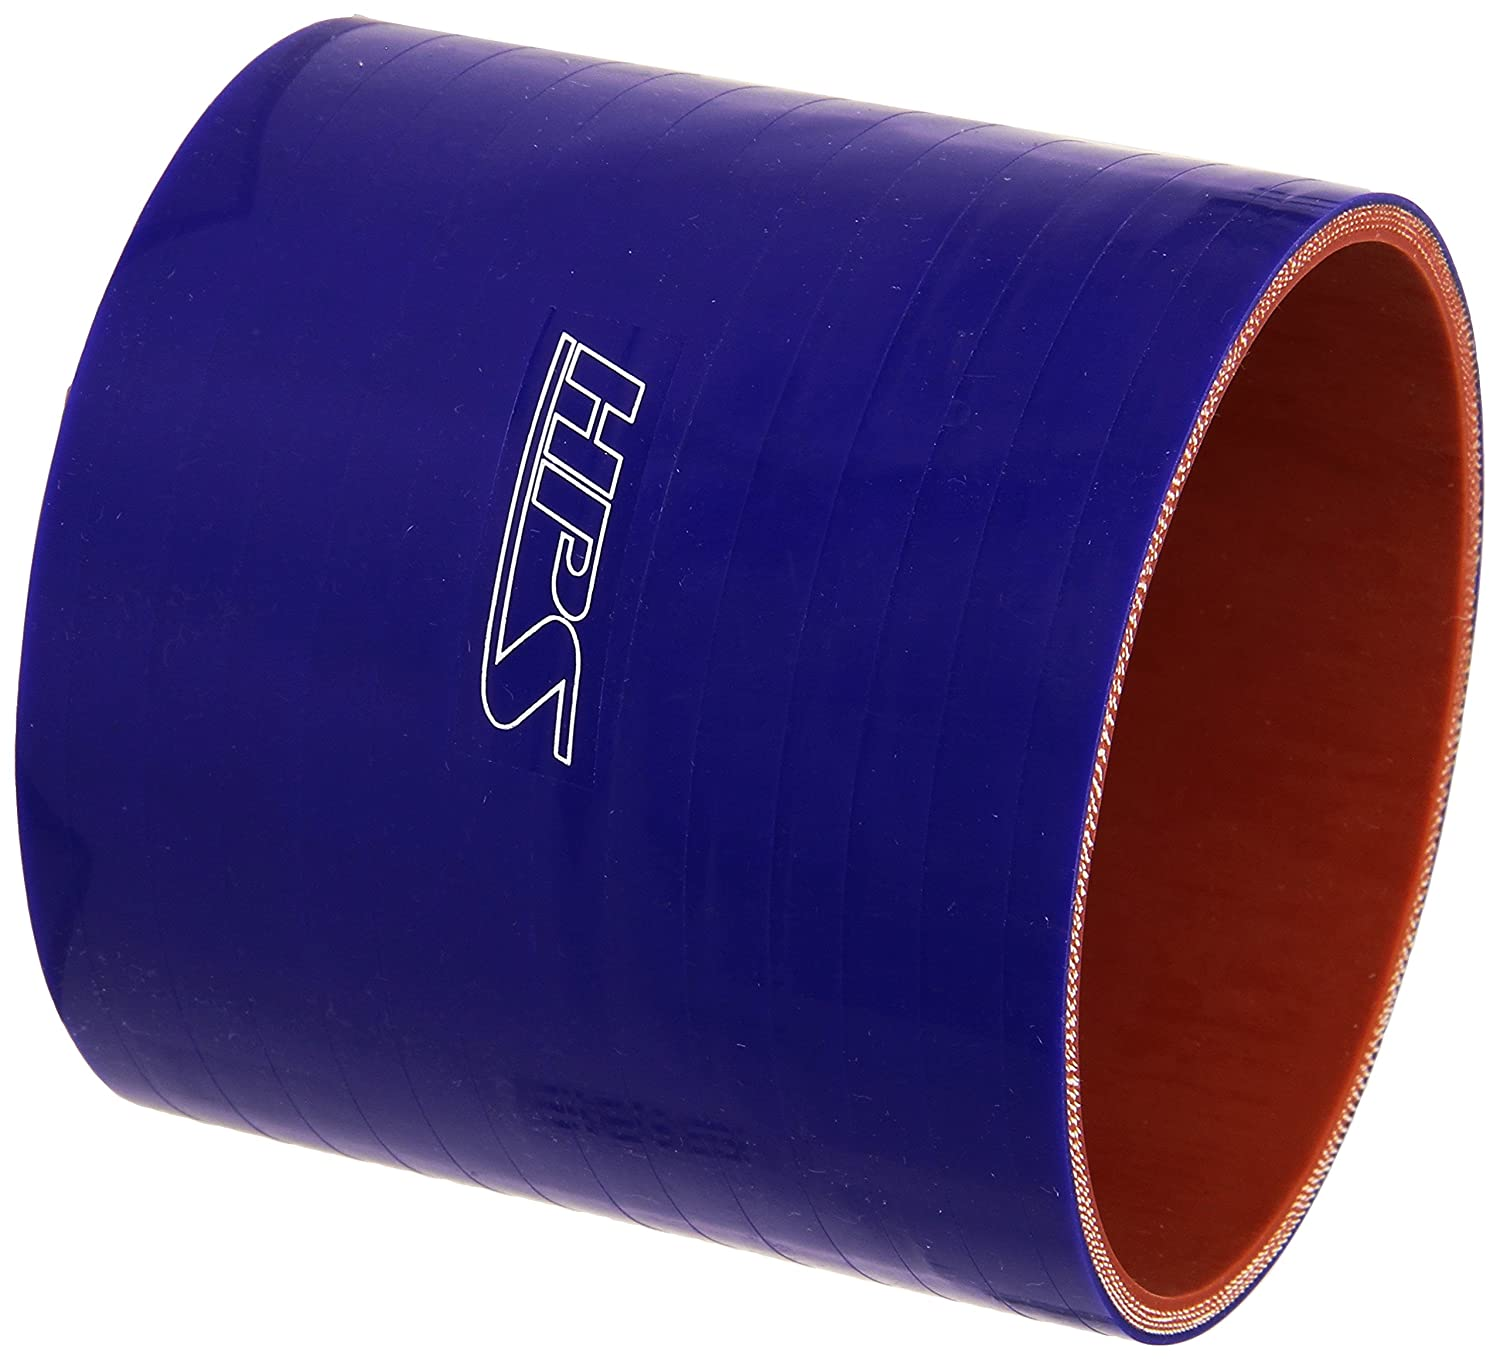 HPS HTSC-400-L4-BLUE Silicone High Temperature 4-ply Reinforced Straight Coupler Hose 4 Length 4 ID 45 PSI Maximum Pressure Blue 4 Length 4 ID HPS Silicone Hoses